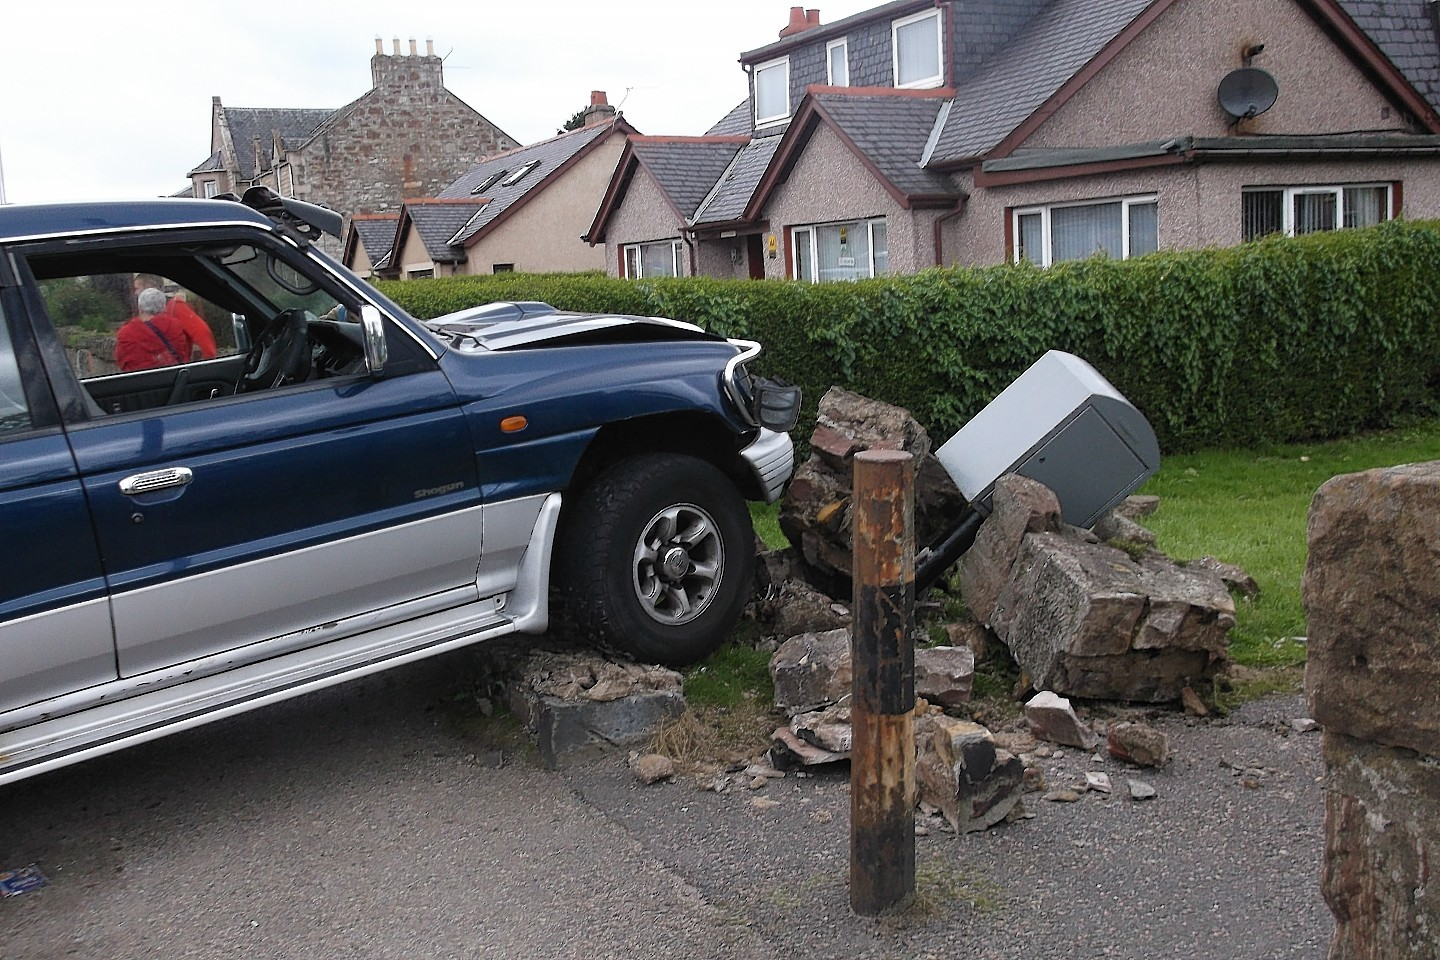 The car crashed into a wall in Inverness